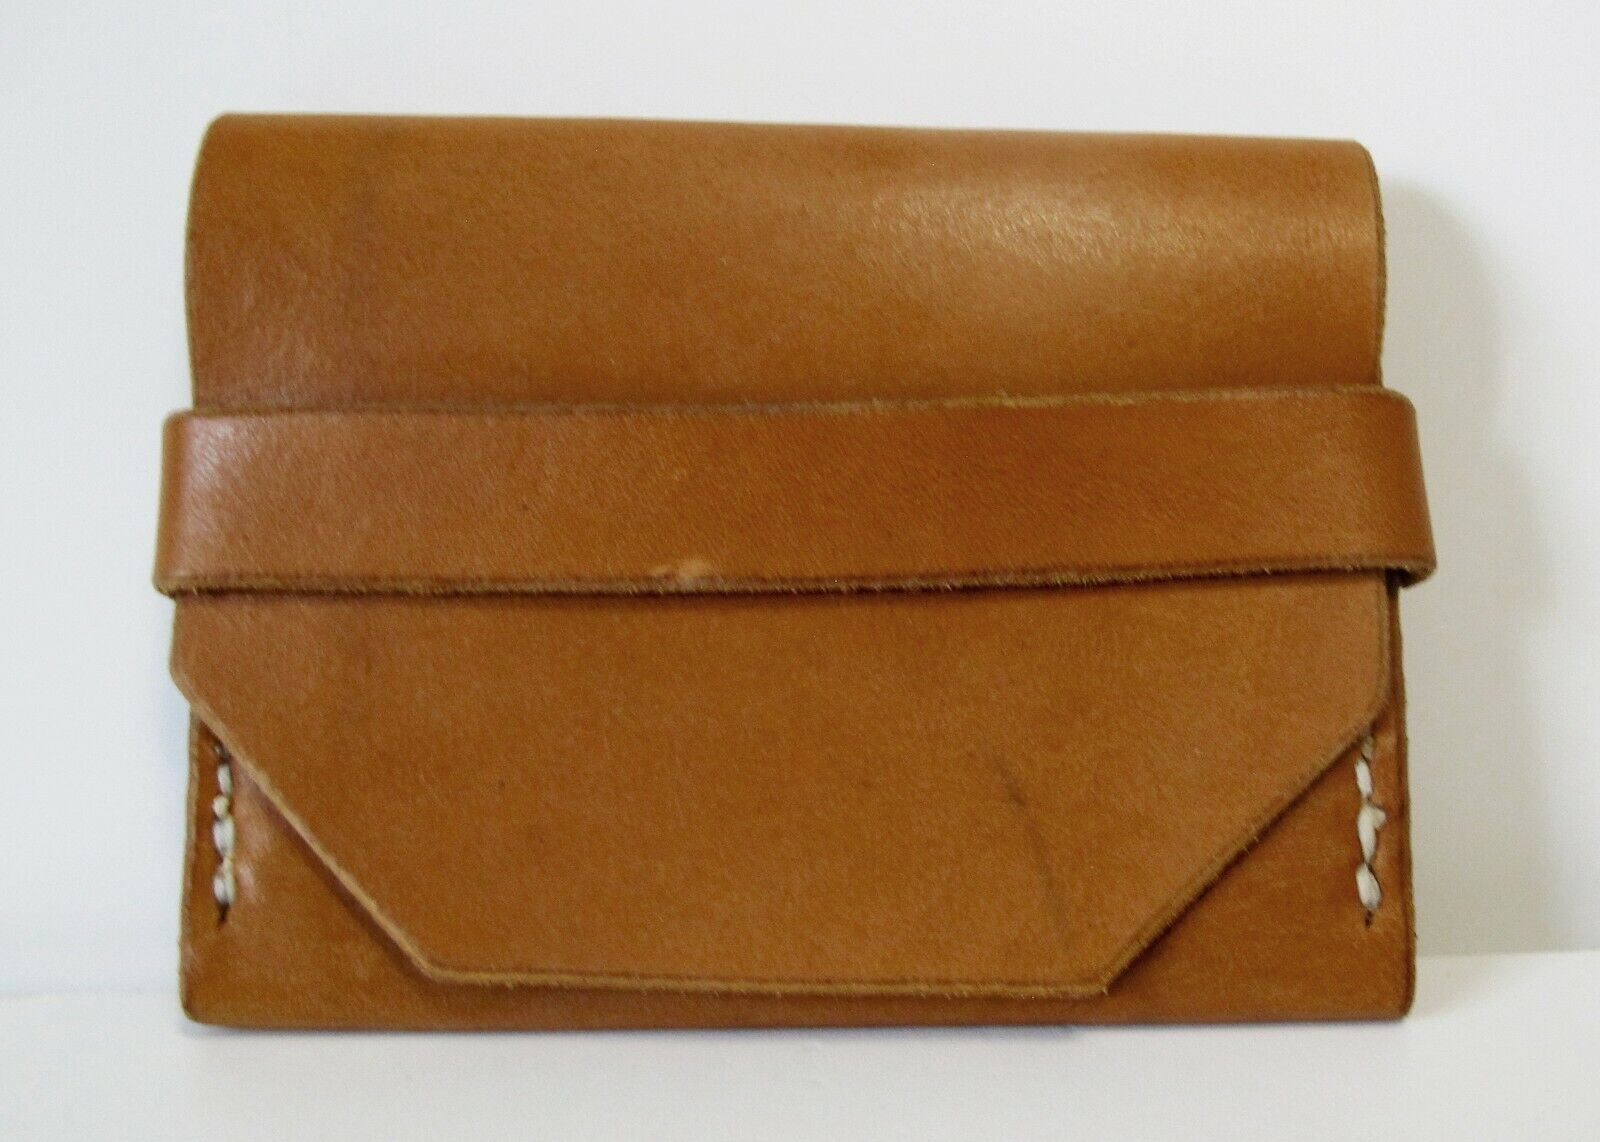 Full-Grain Horween Cowhide Cash and Card Flap Men's Wallet, Natural Finish